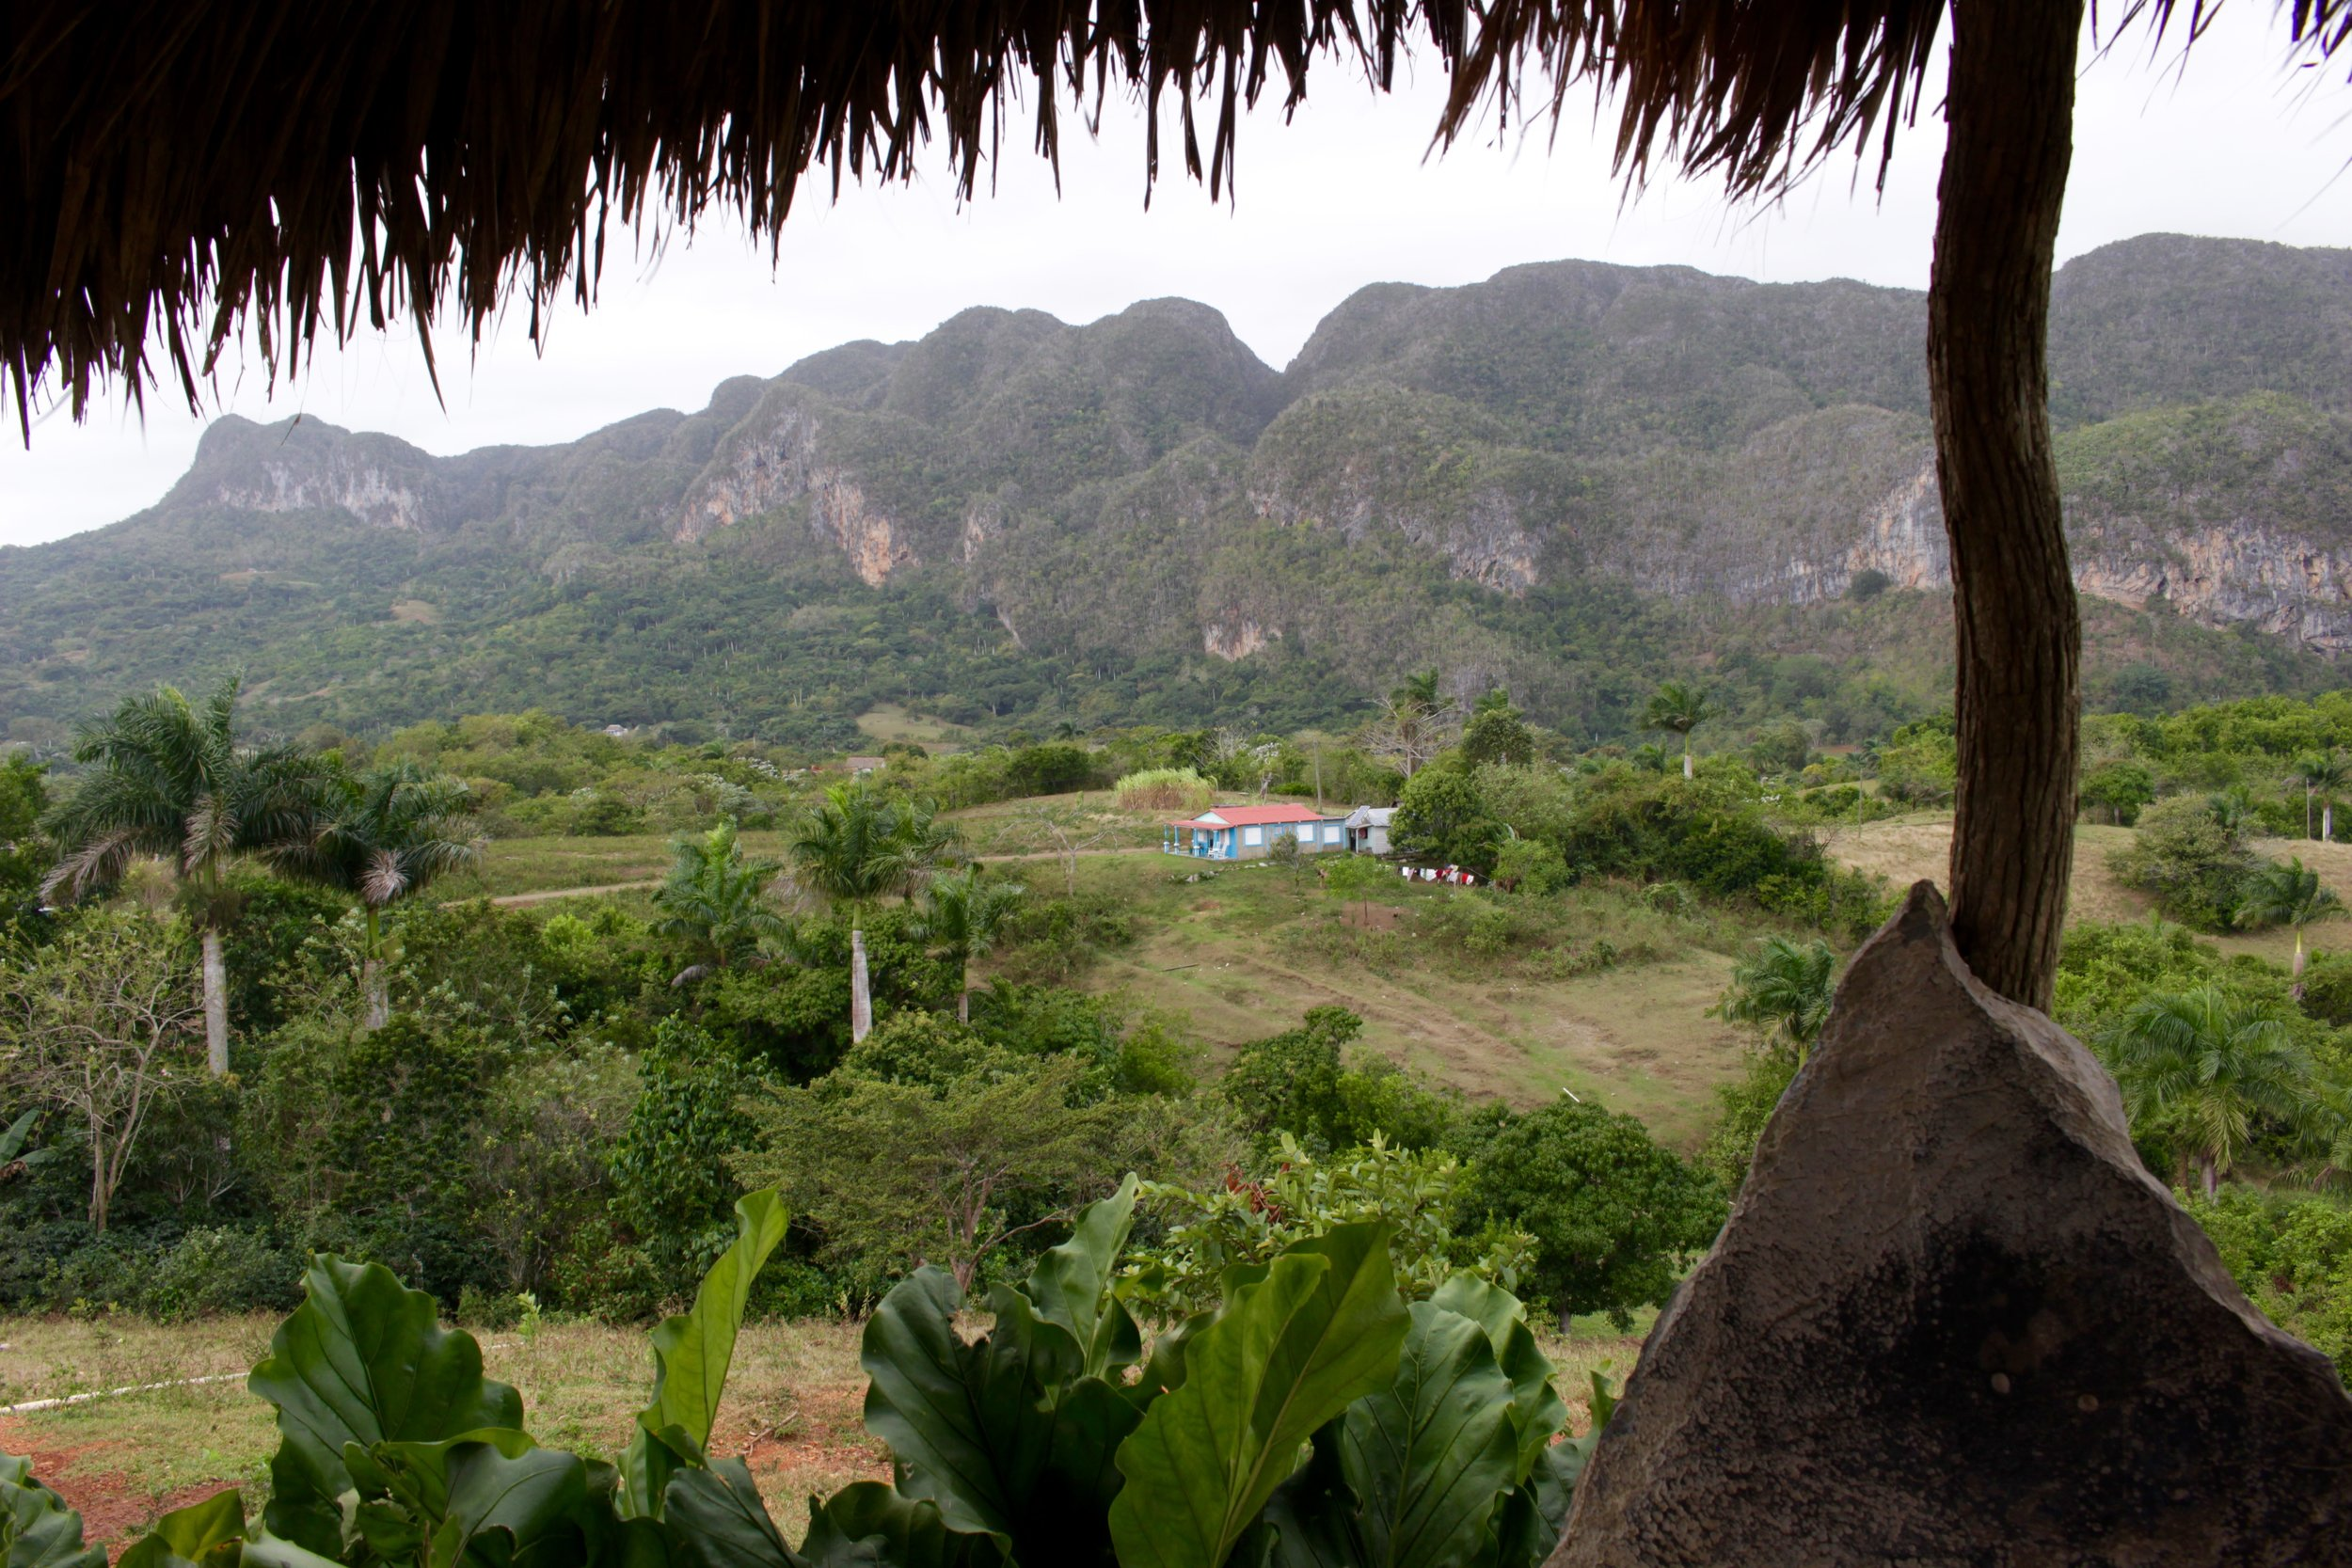 An overlook at a little restaurant in Viñales. Ride your bike to the top and have lunch overlooking the valley.